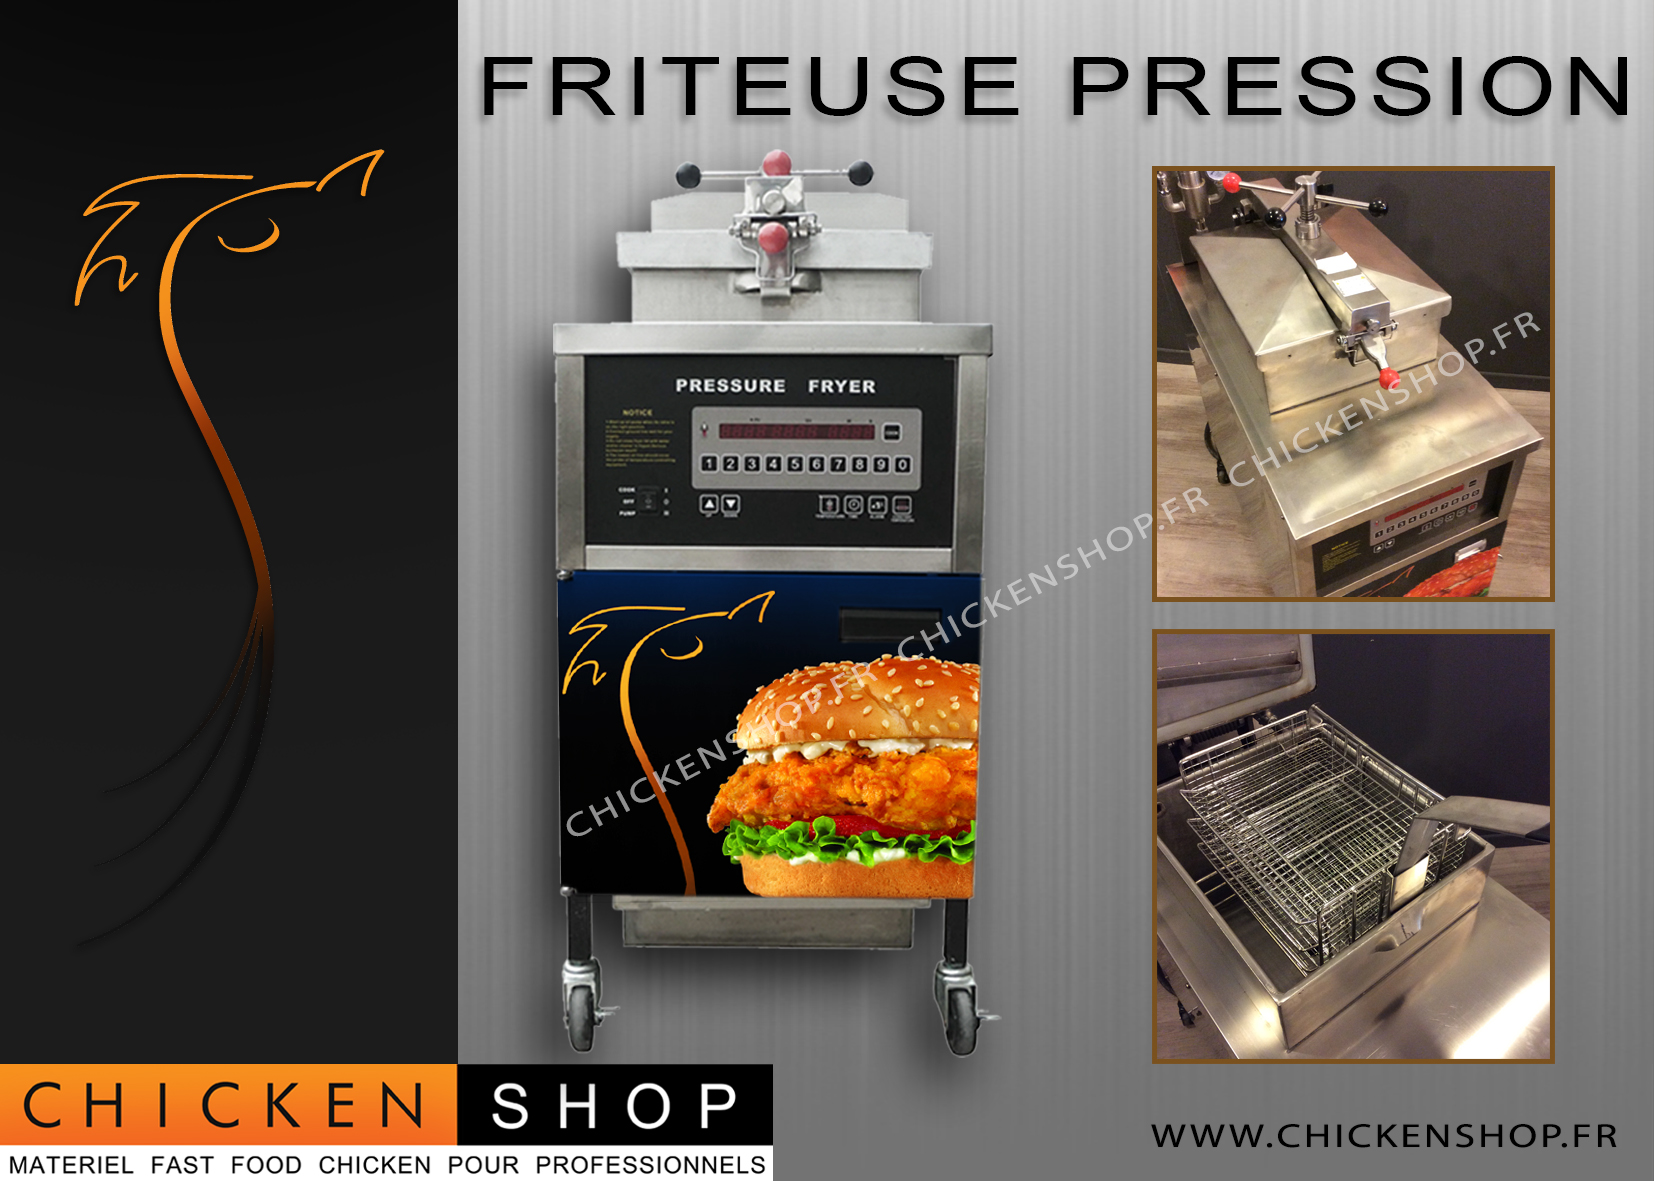 Friteuse Pression Digitale Gaz